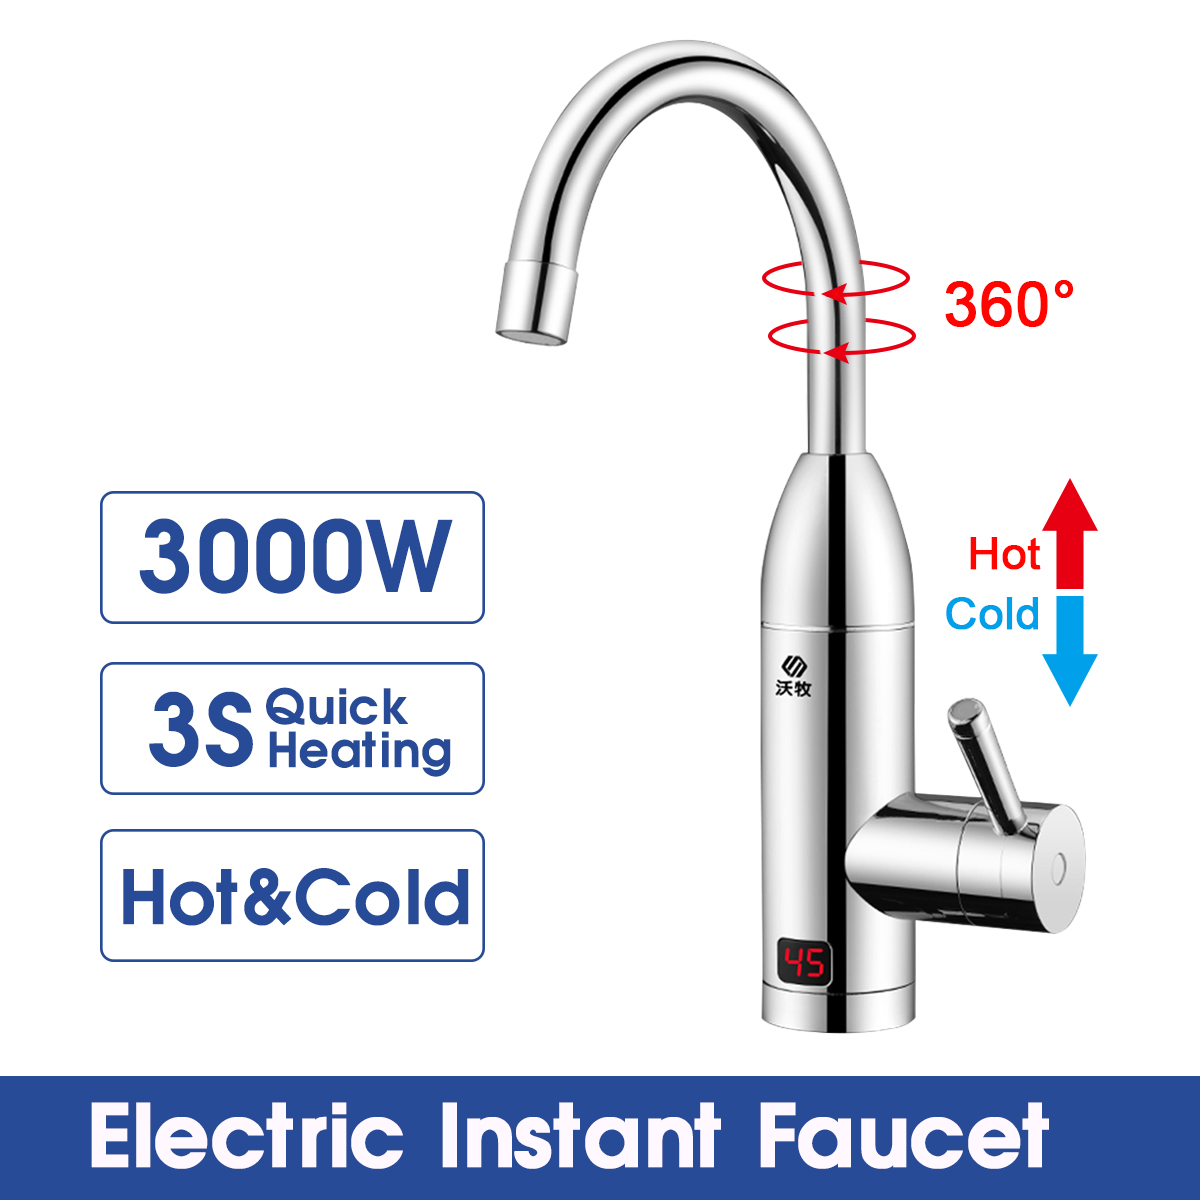 Electric Faucet Instant Water Heater Tap Faucet Heater Cold Heating Faucet Tankless Instantaneous Water Heater Kitchen Faucets